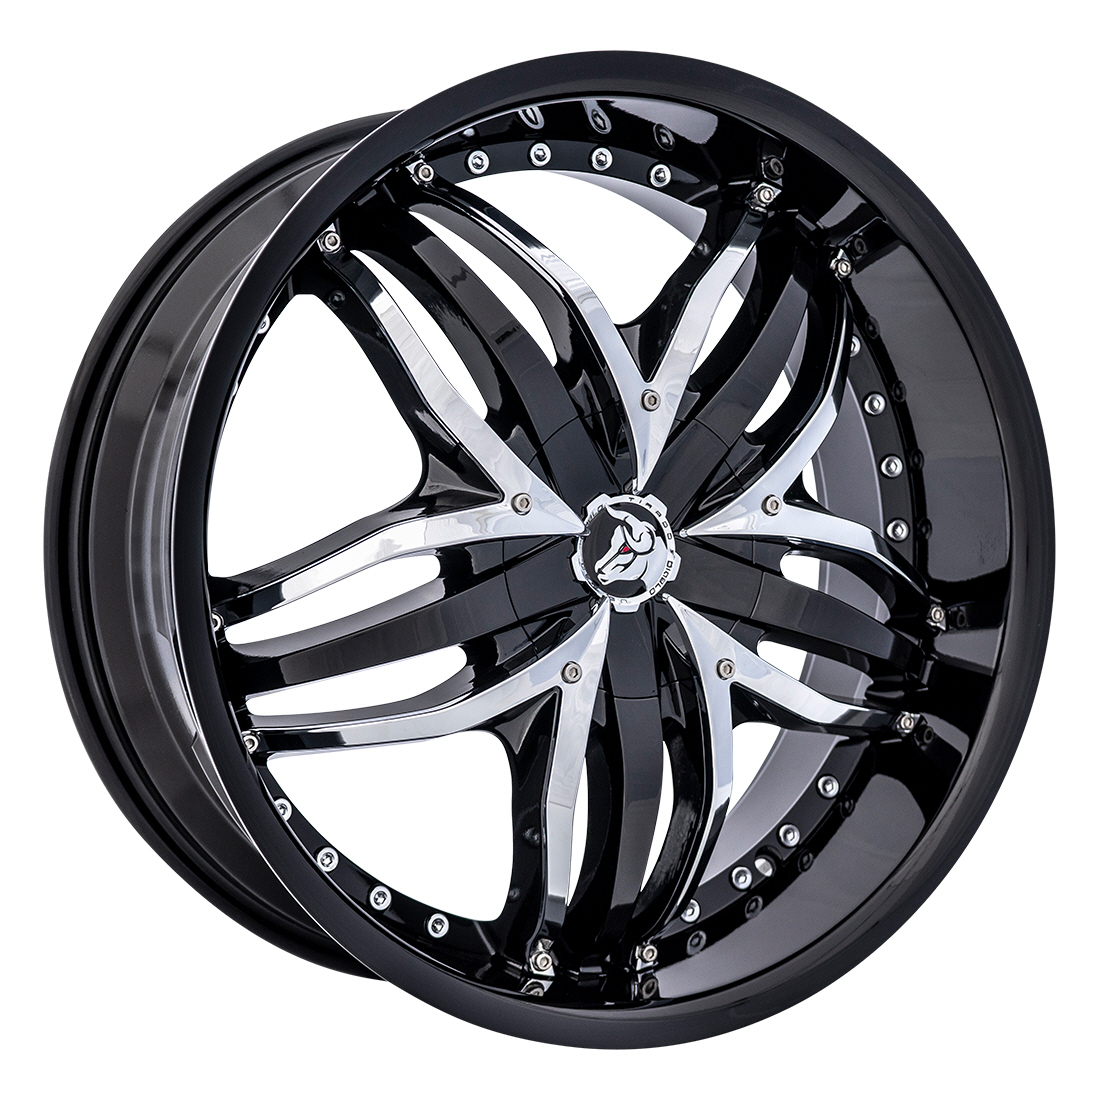 ANGEL  WHEELS AND RIMS PACKAGES